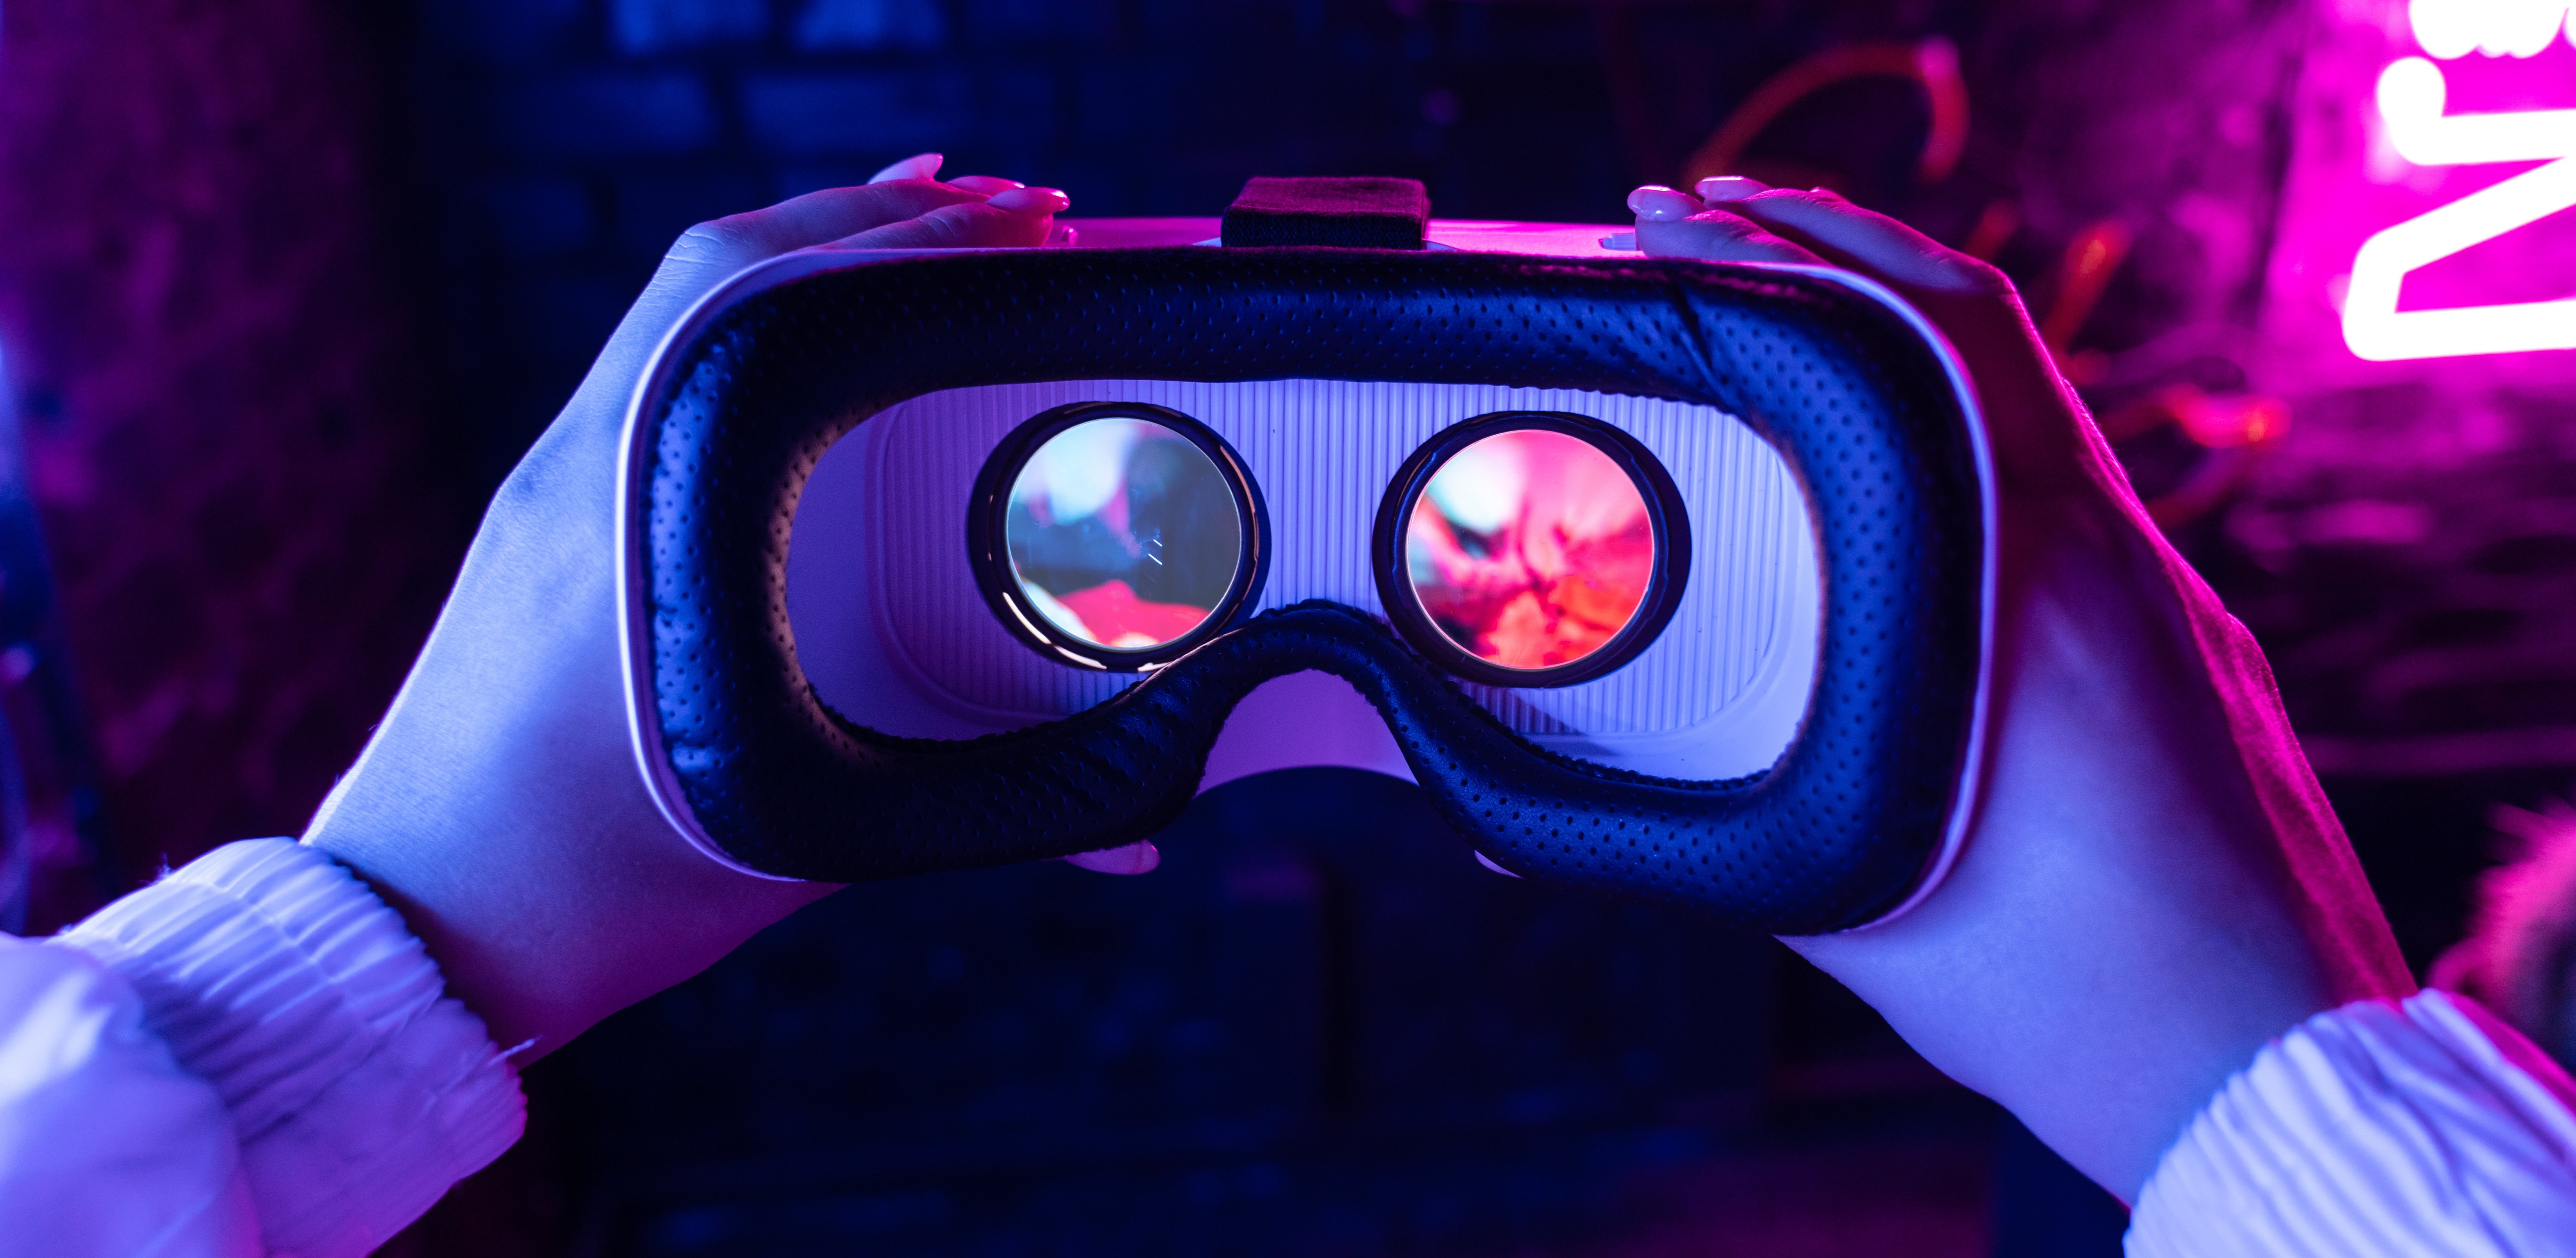 Looking inside a VR headset